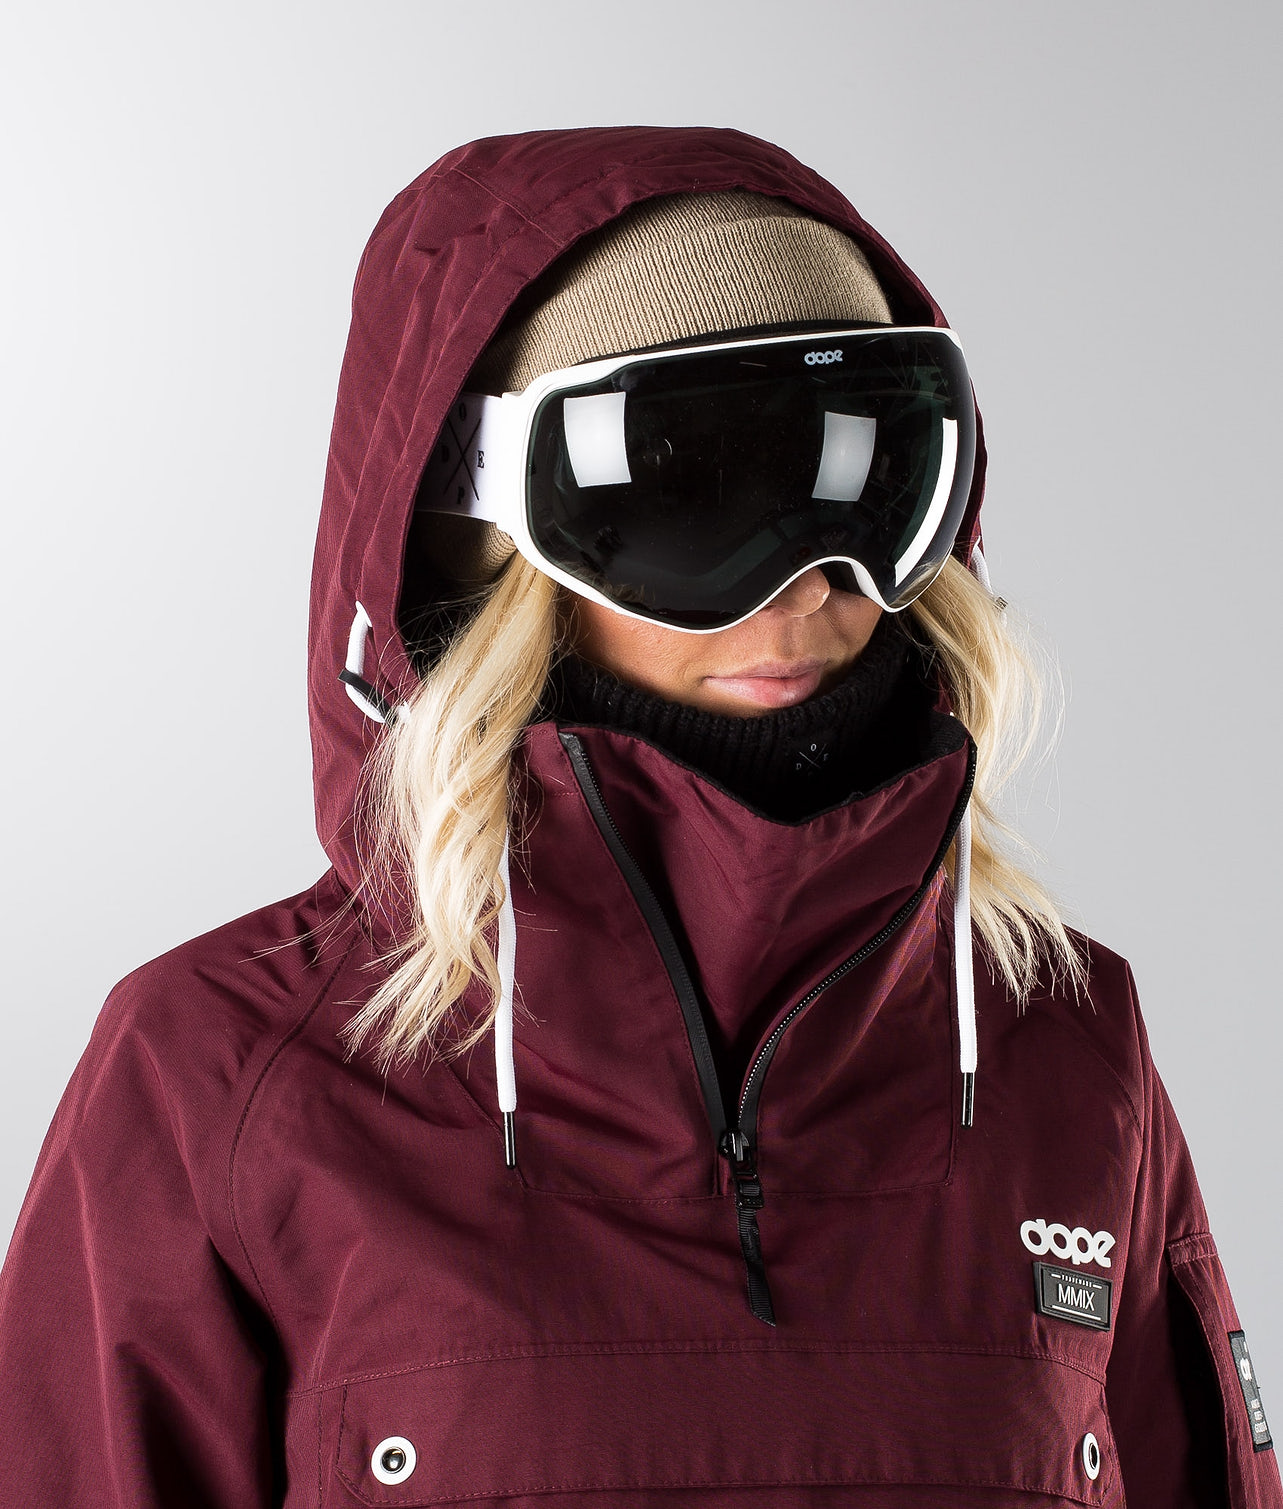 Buy Sphere 2X-UP Ski Goggle from Dope at Ridestore.com - Always free shipping, free returns and 30 days money back guarantee